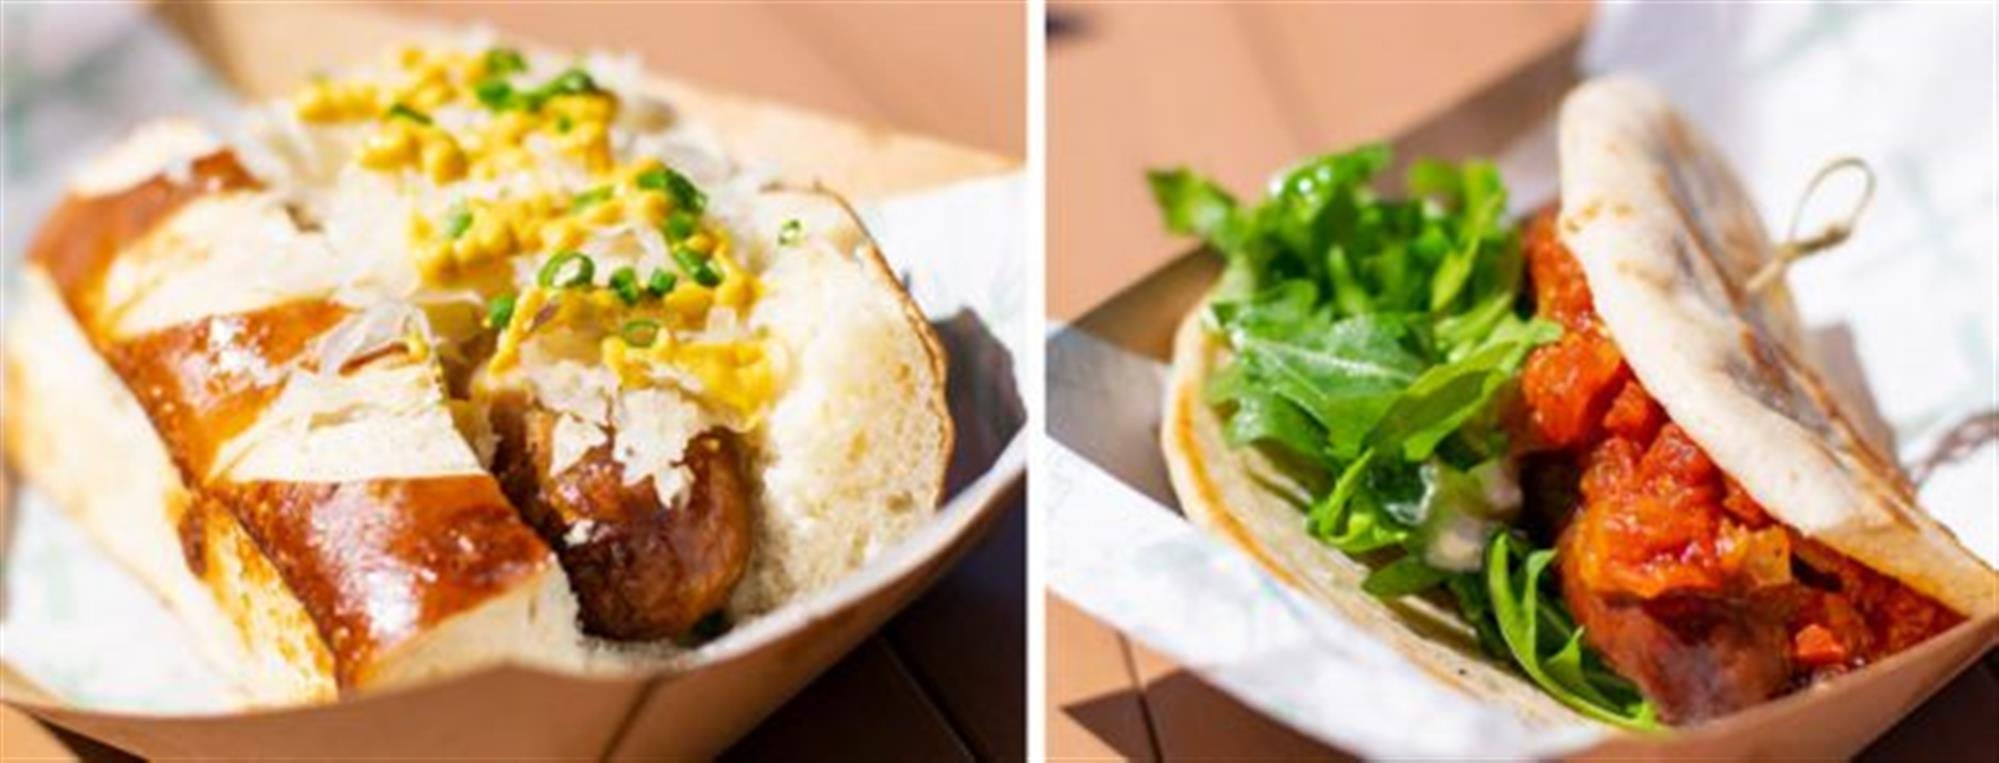 Bratwurst and Lamb Sausages from B.B. Wolf's Sausage Co. at Disney Springs